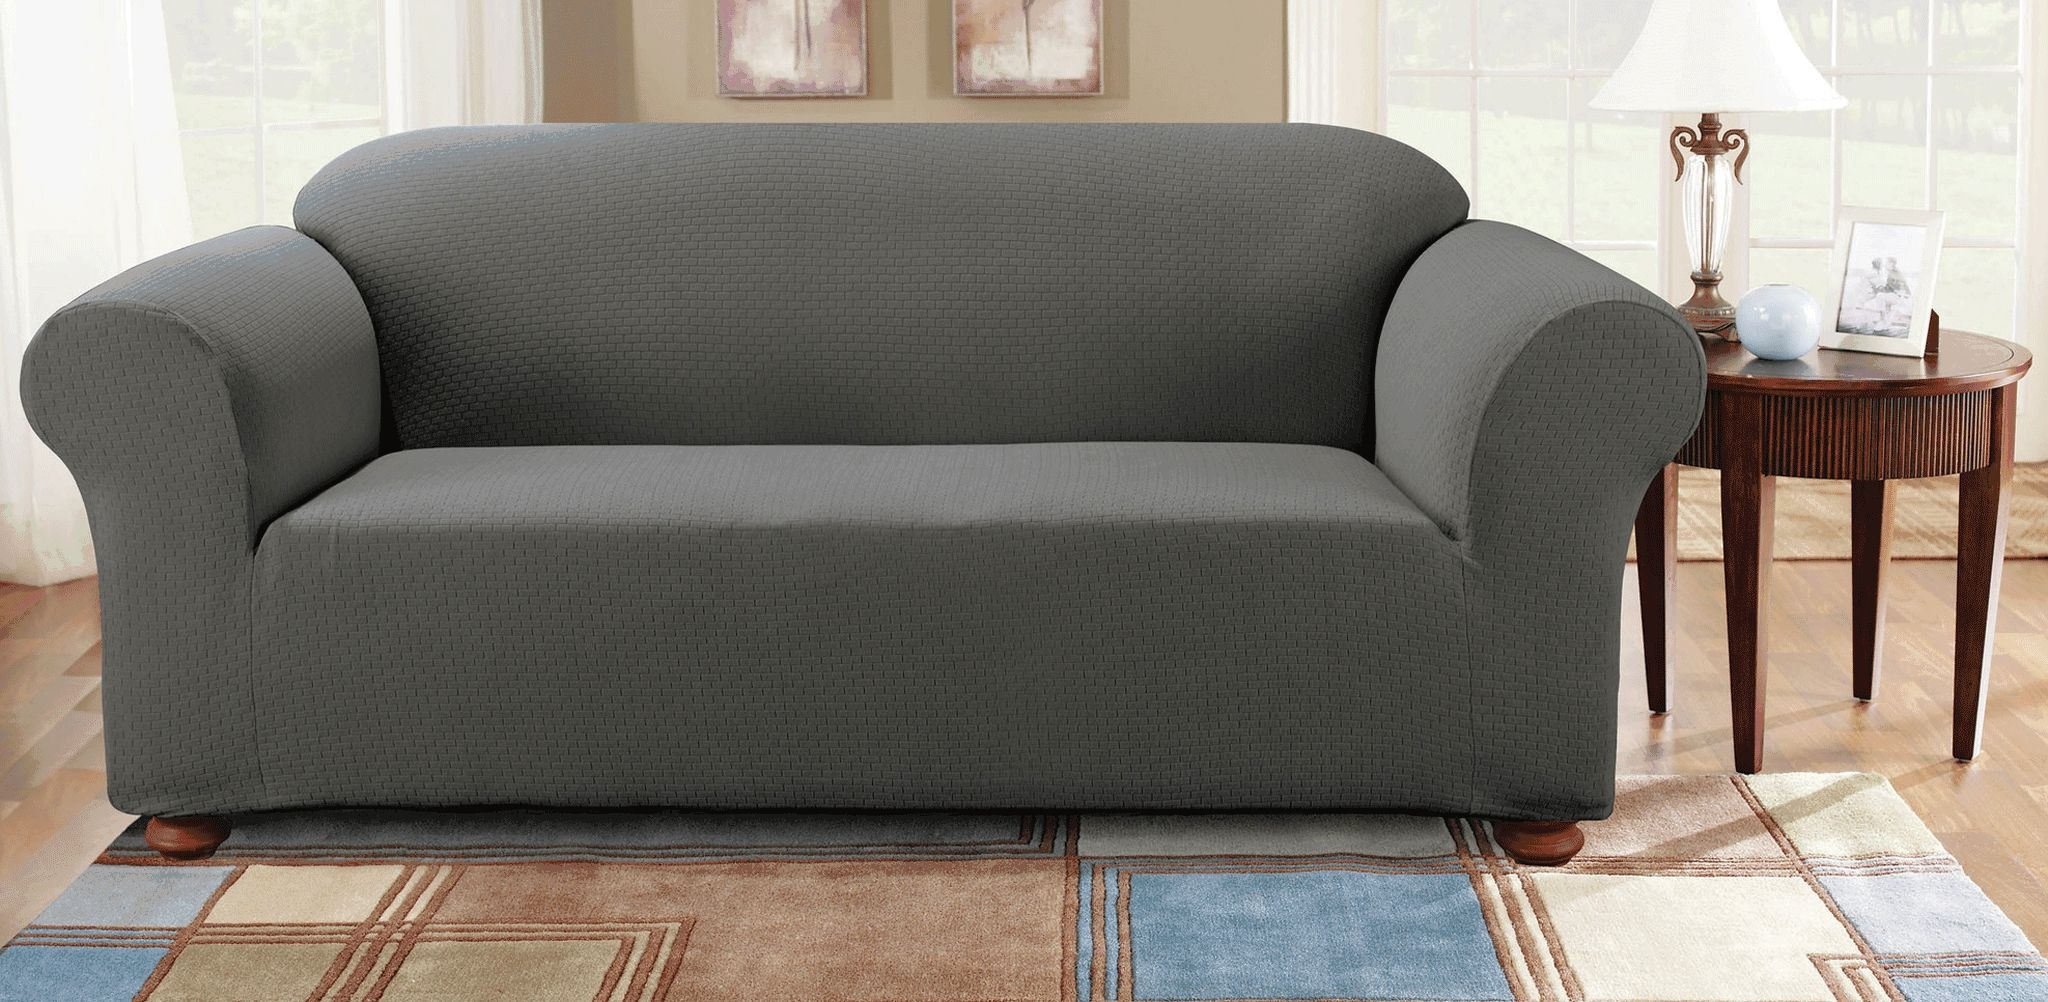 Sectional Couch Covers Big Lots small sectional Cheap